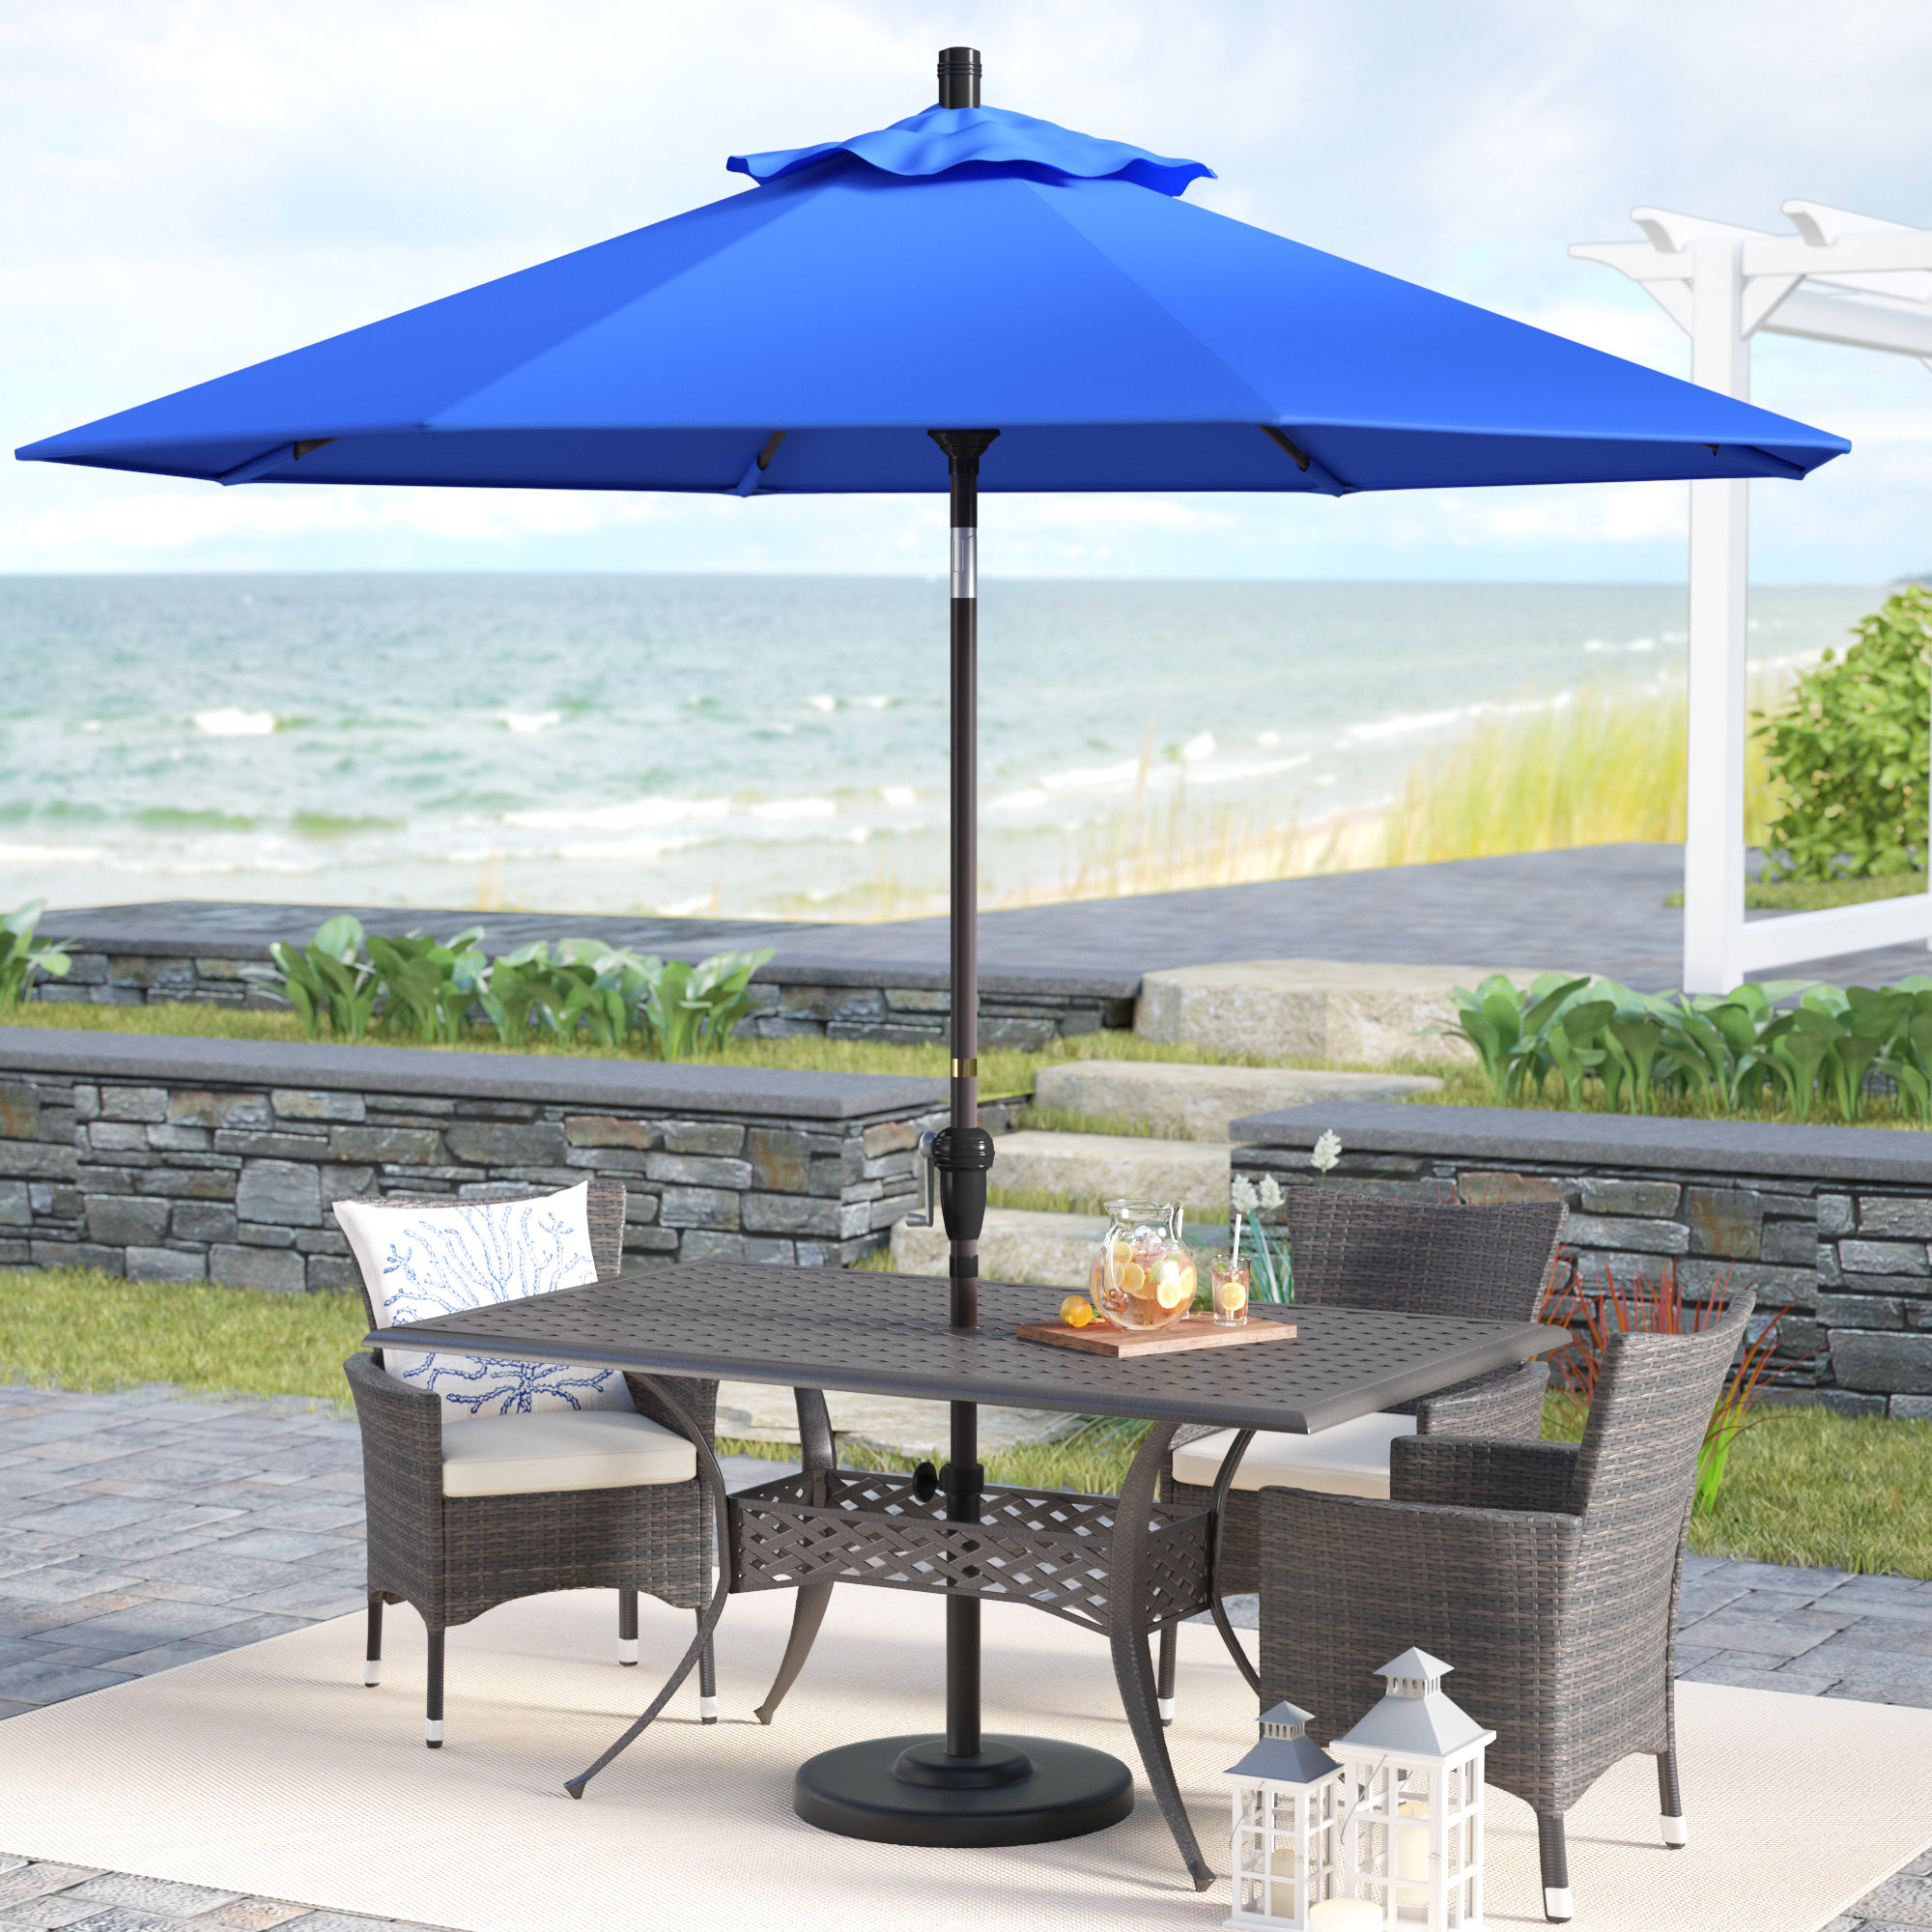 Mullaney 9' Market Sunbrella Umbrella Pertaining To Well Known Mullaney Market Umbrellas (Gallery 8 of 20)